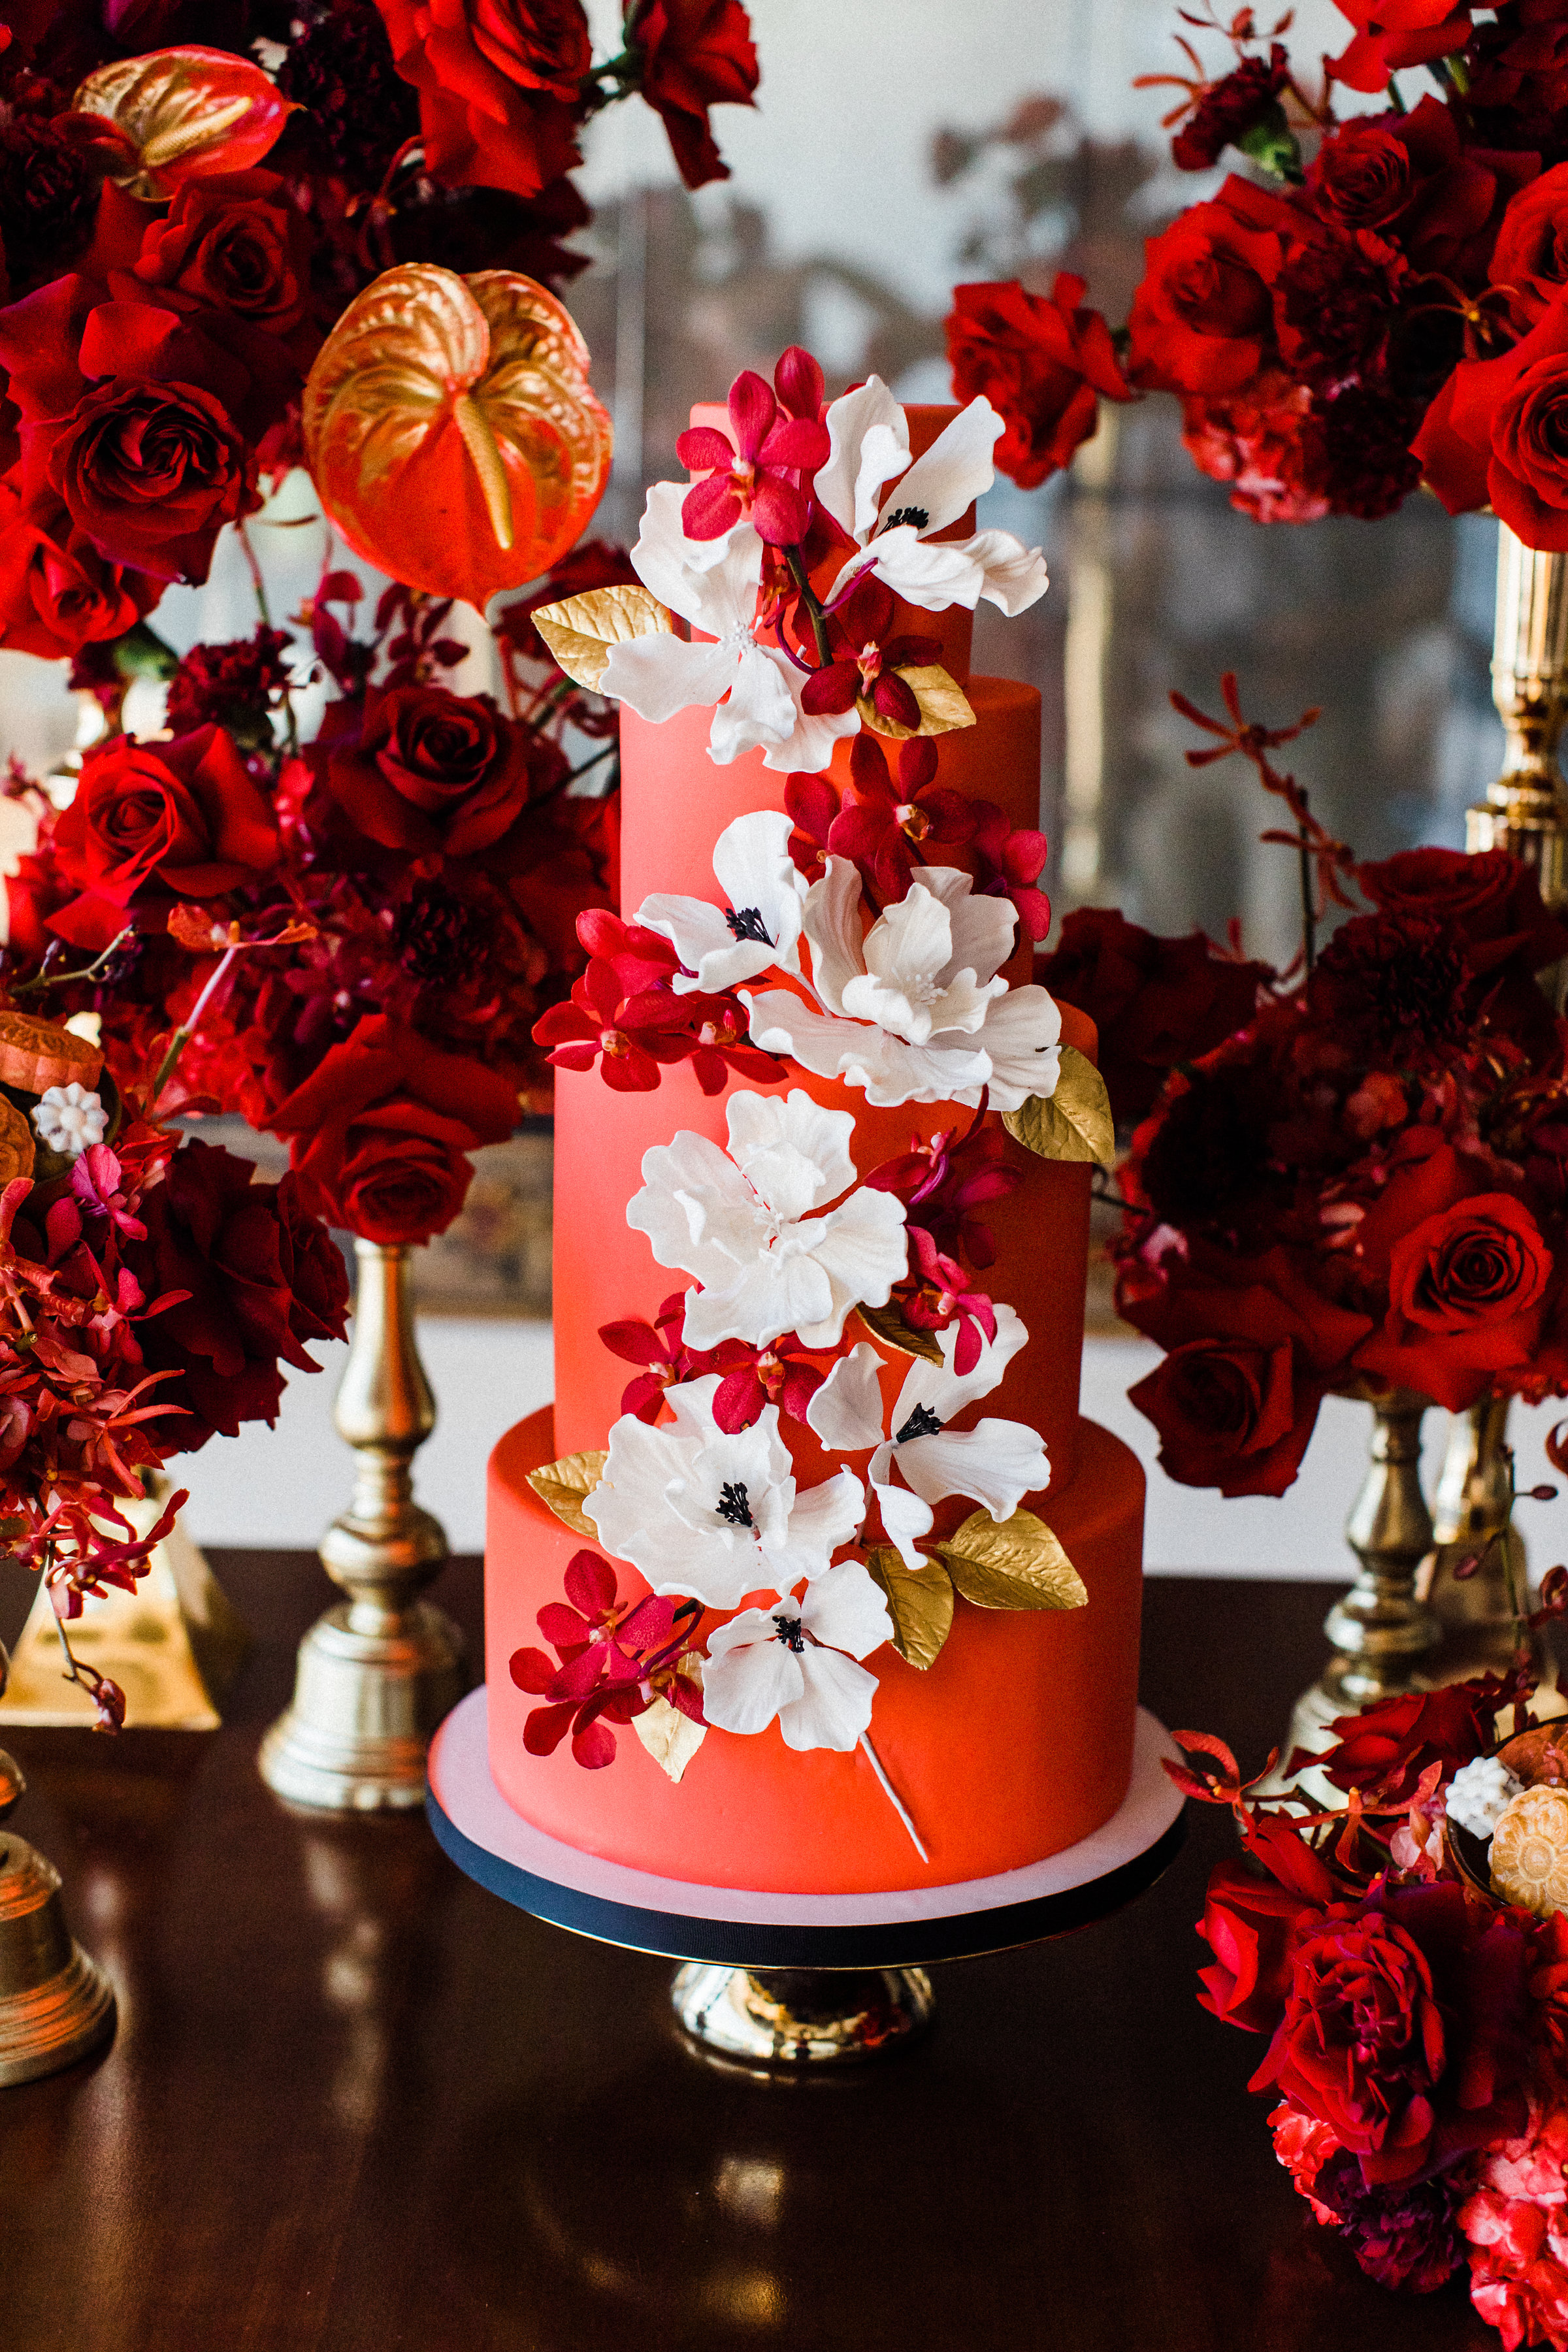 August In Bloom - Cake with floral detail - Scarlet Sweetheart (Lavish Dulhan)